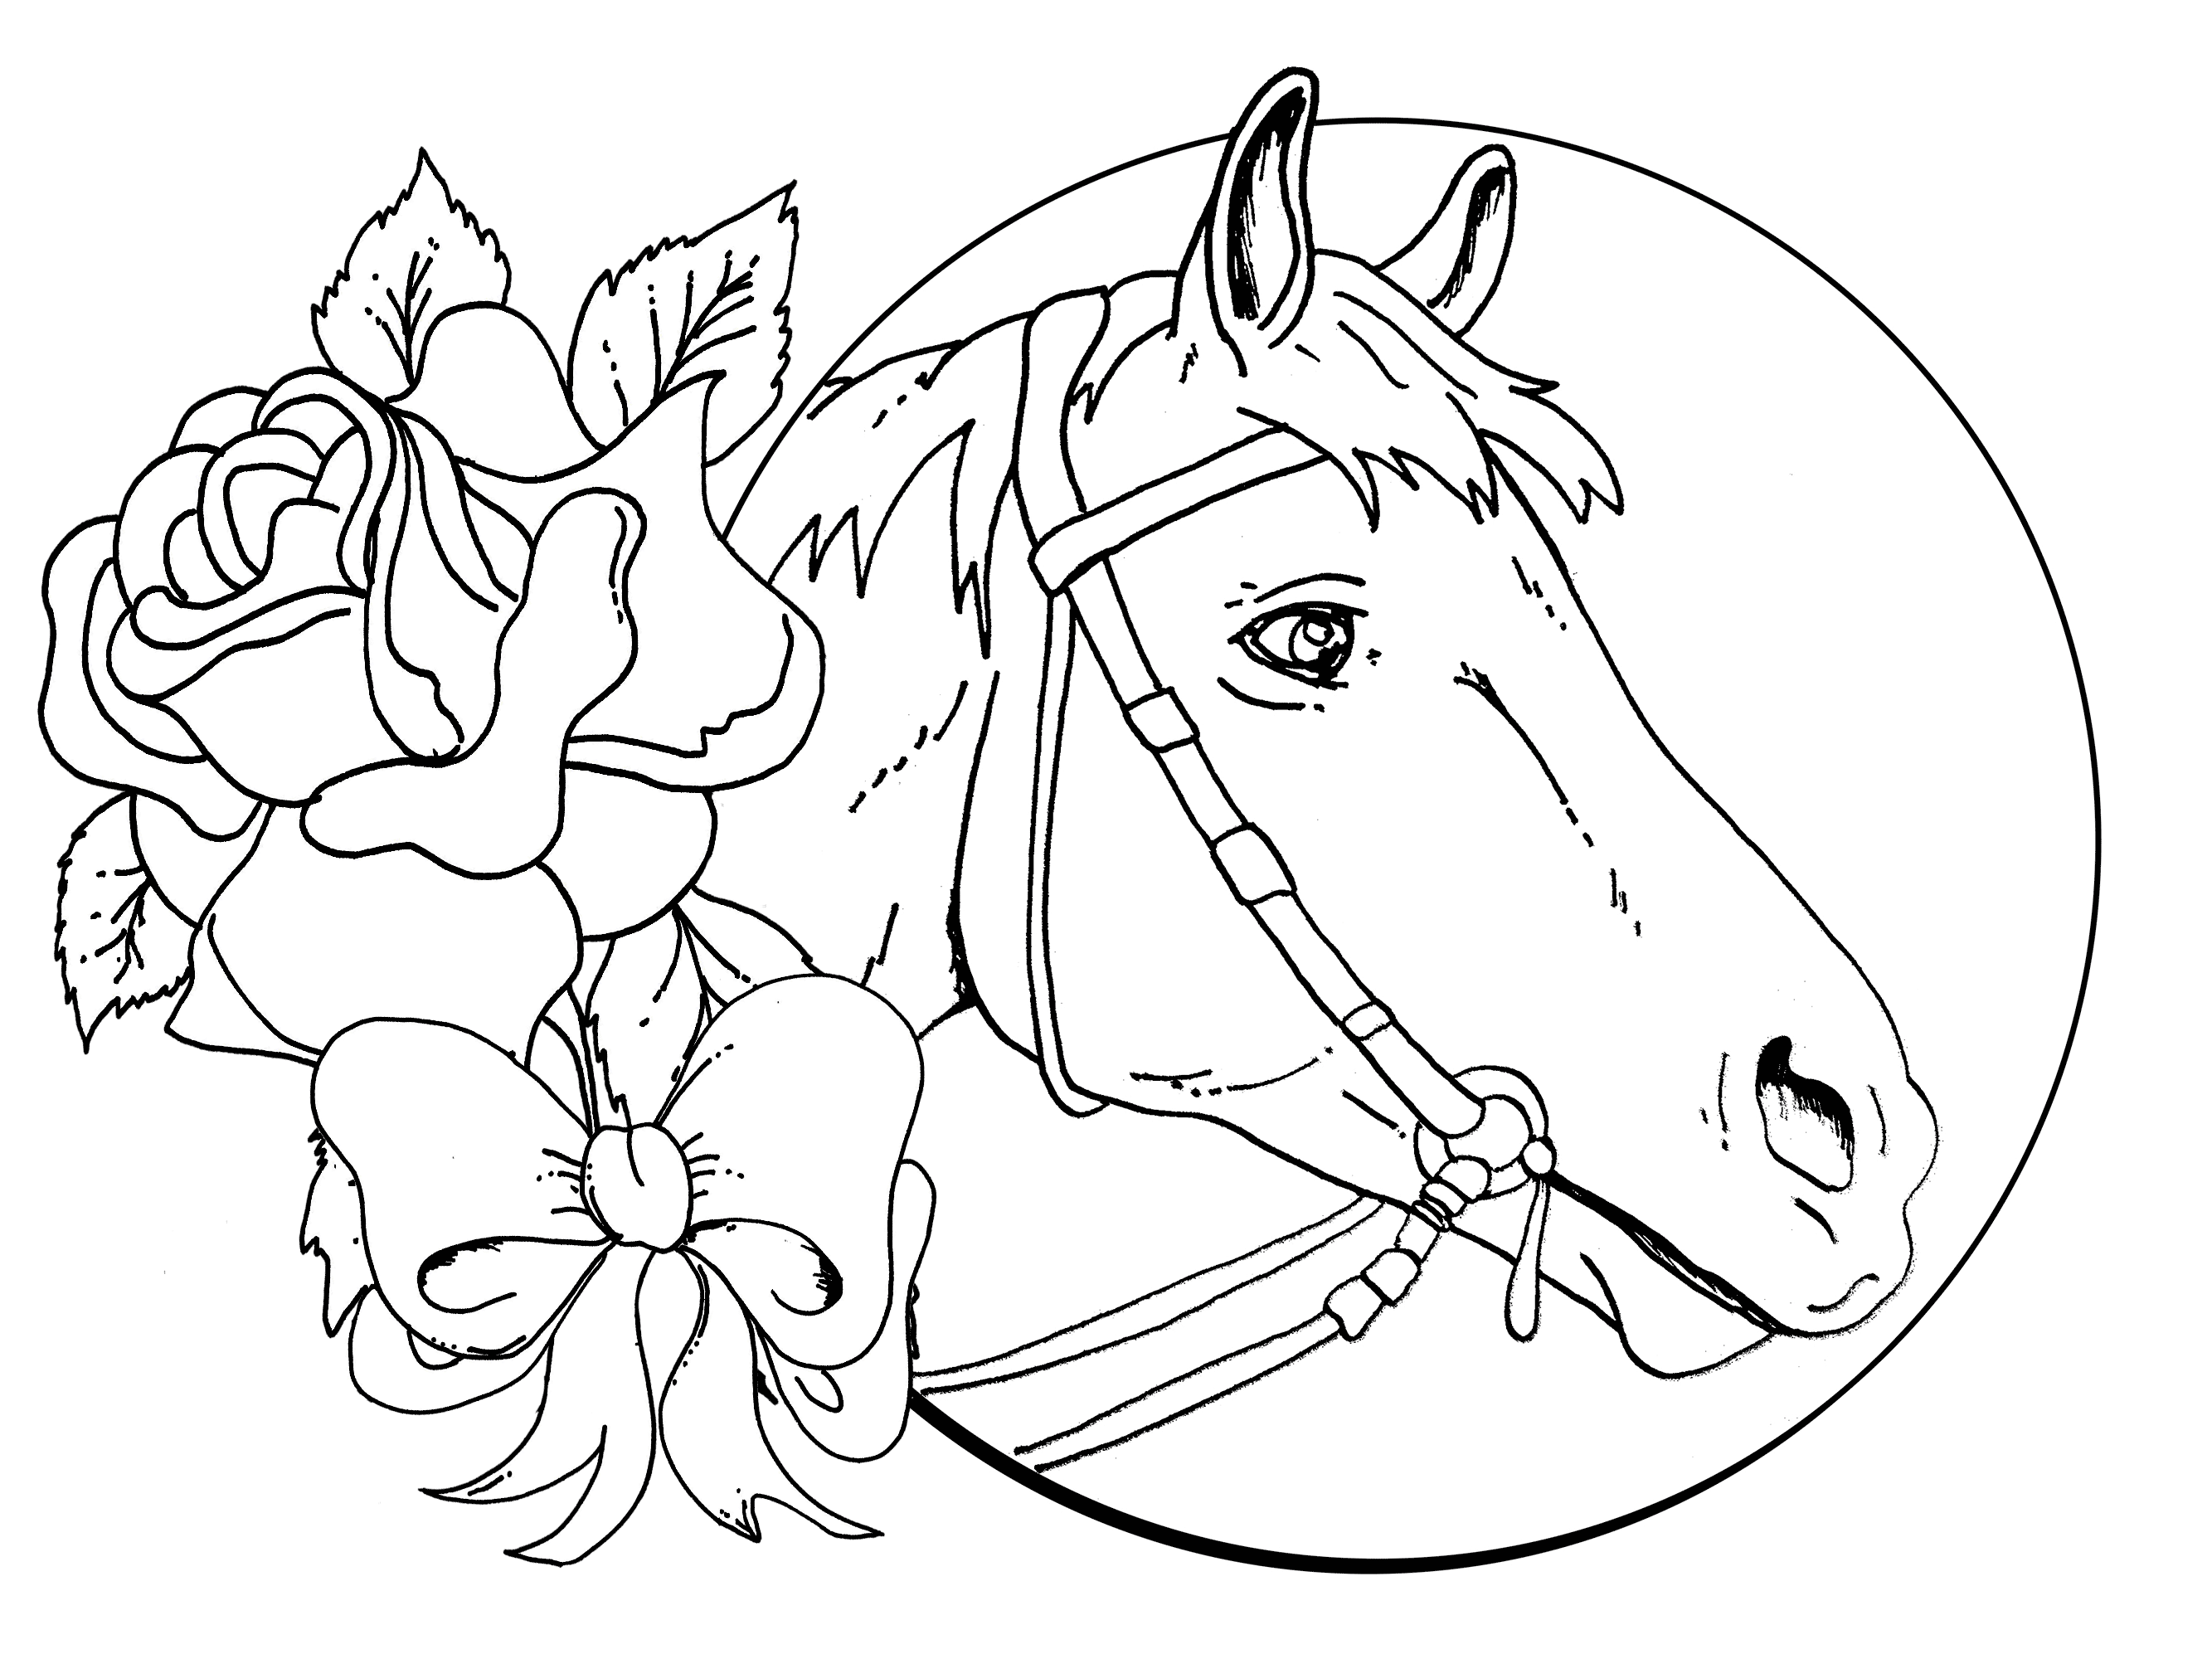 Lisa frank coloring pages to color online - Detailed Christmas Coloring Pages Download Horse Coloring Pages For Girls